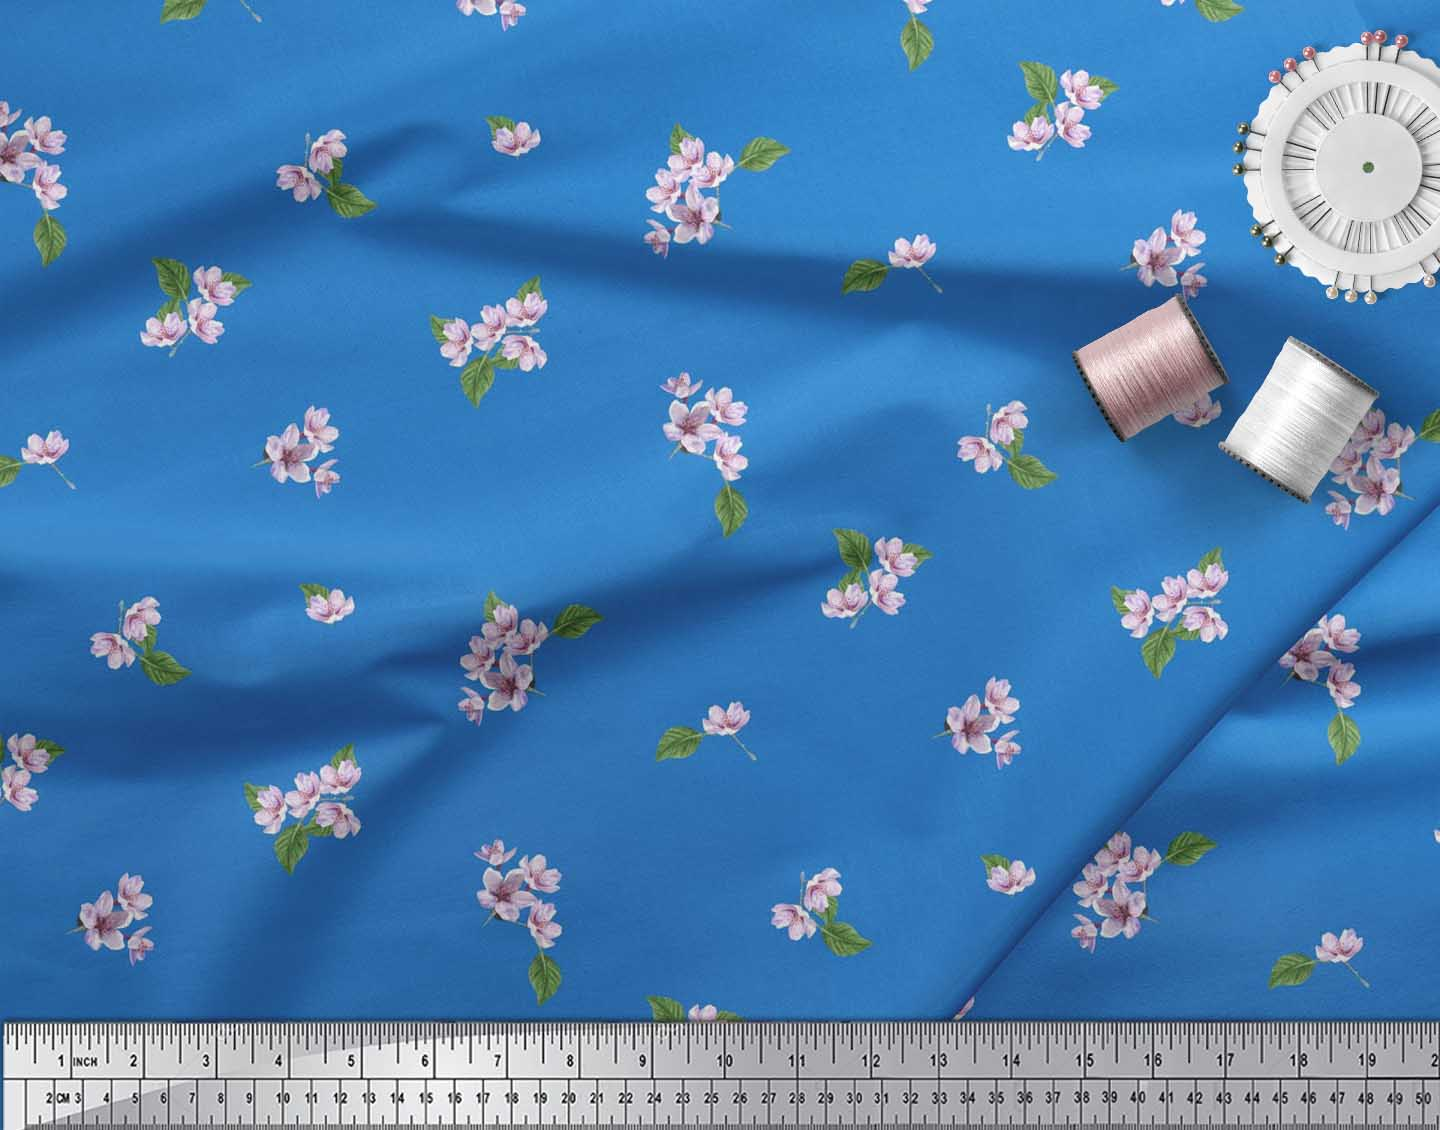 Soimoi-Cotton-Poplin-Fabric-Leaves-amp-Azalia-Floral-Printed-Craft-Xvh thumbnail 4